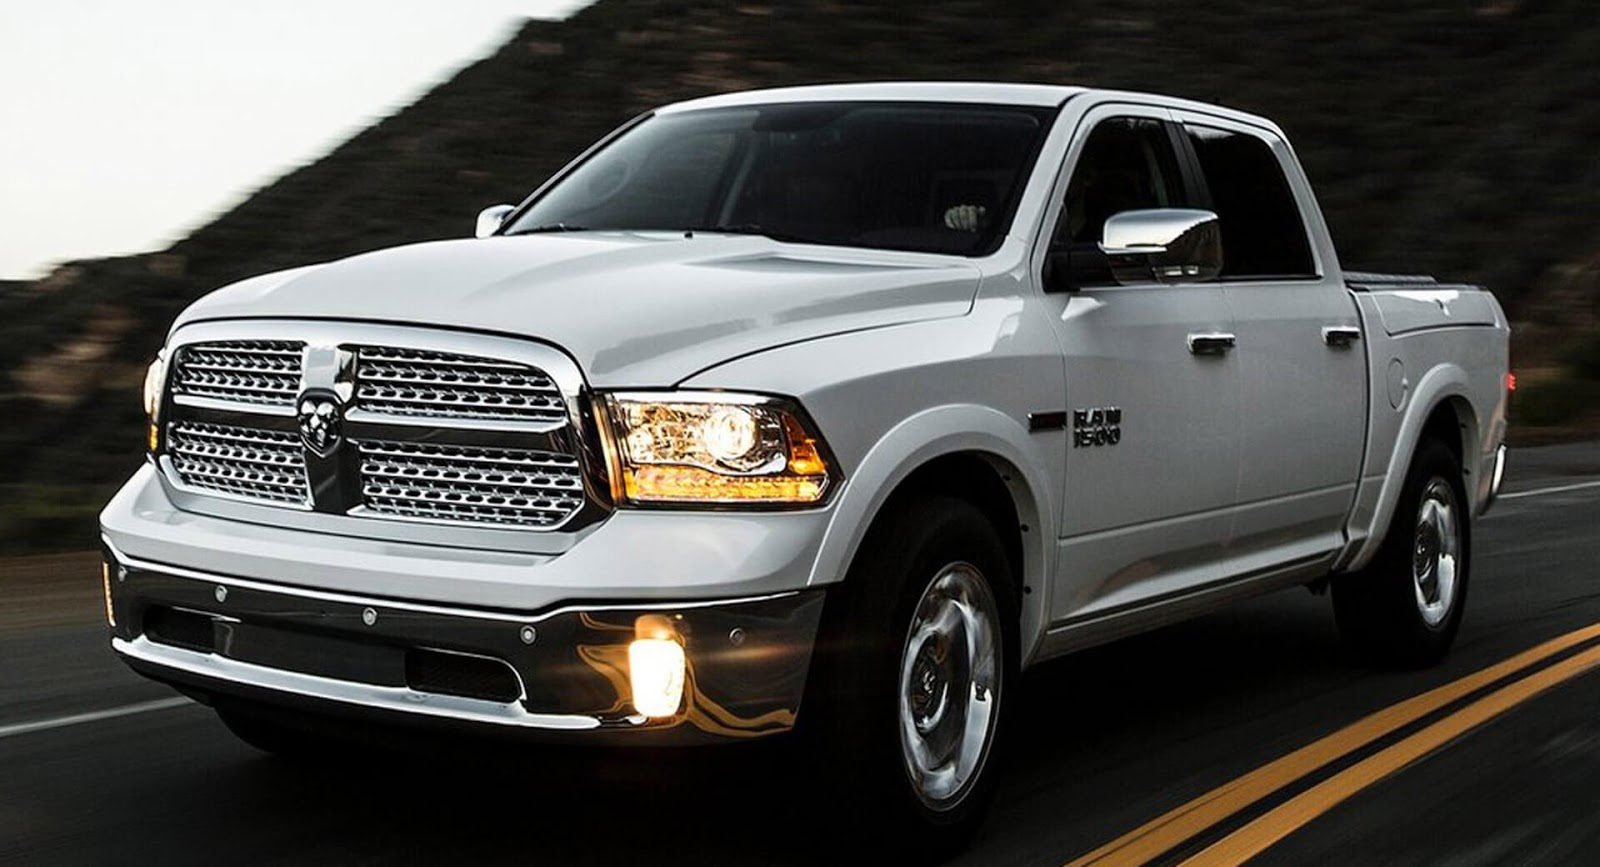 Fiat Chrysler recalling 1.8 million heavy duty Ram pickups